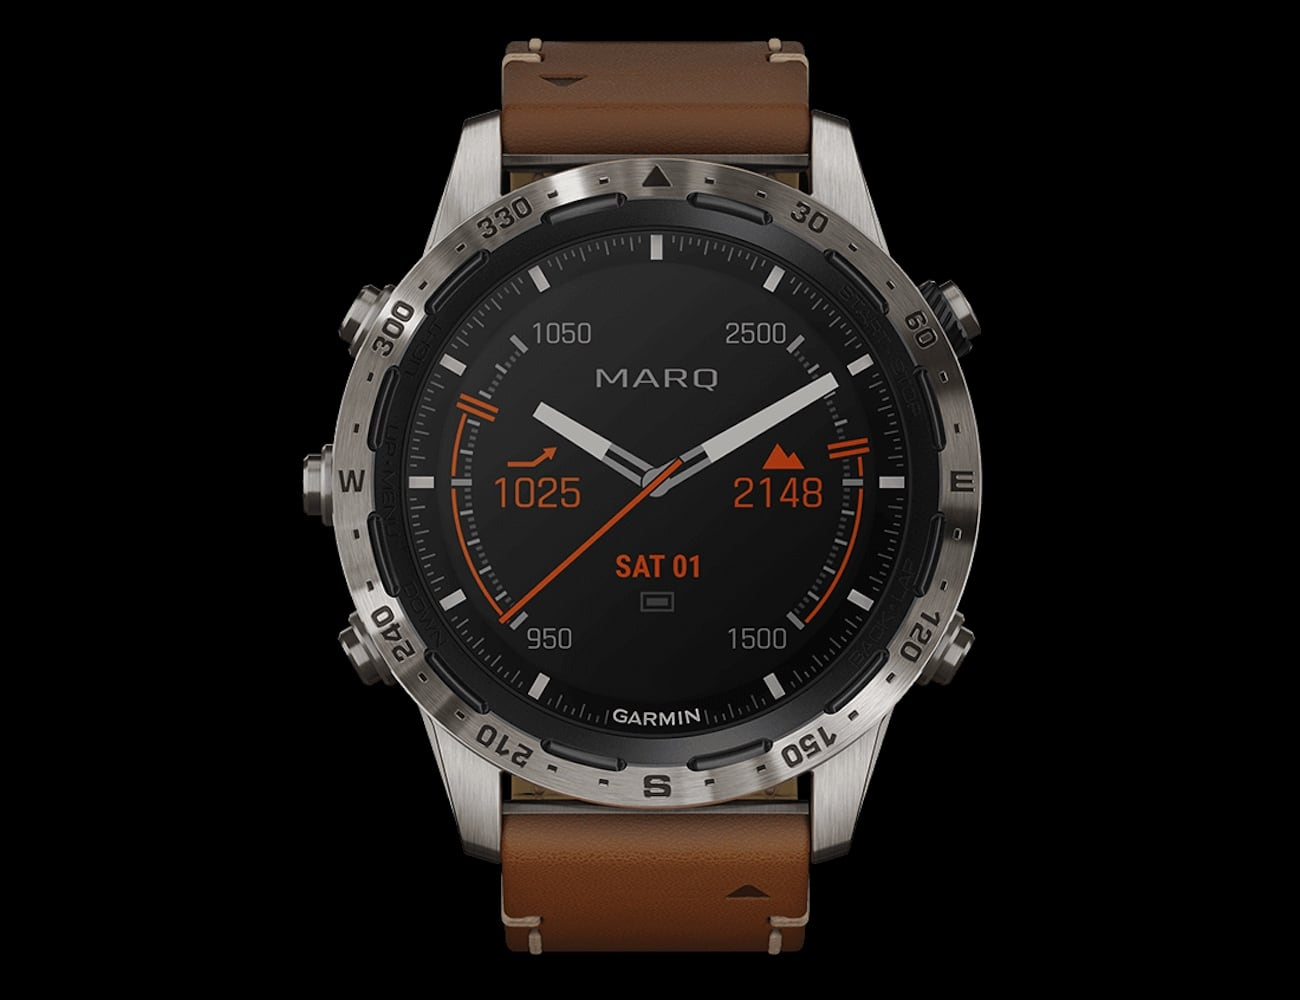 Garmin MARQ Expedition Modern Tool Watch keeps up with your adventures